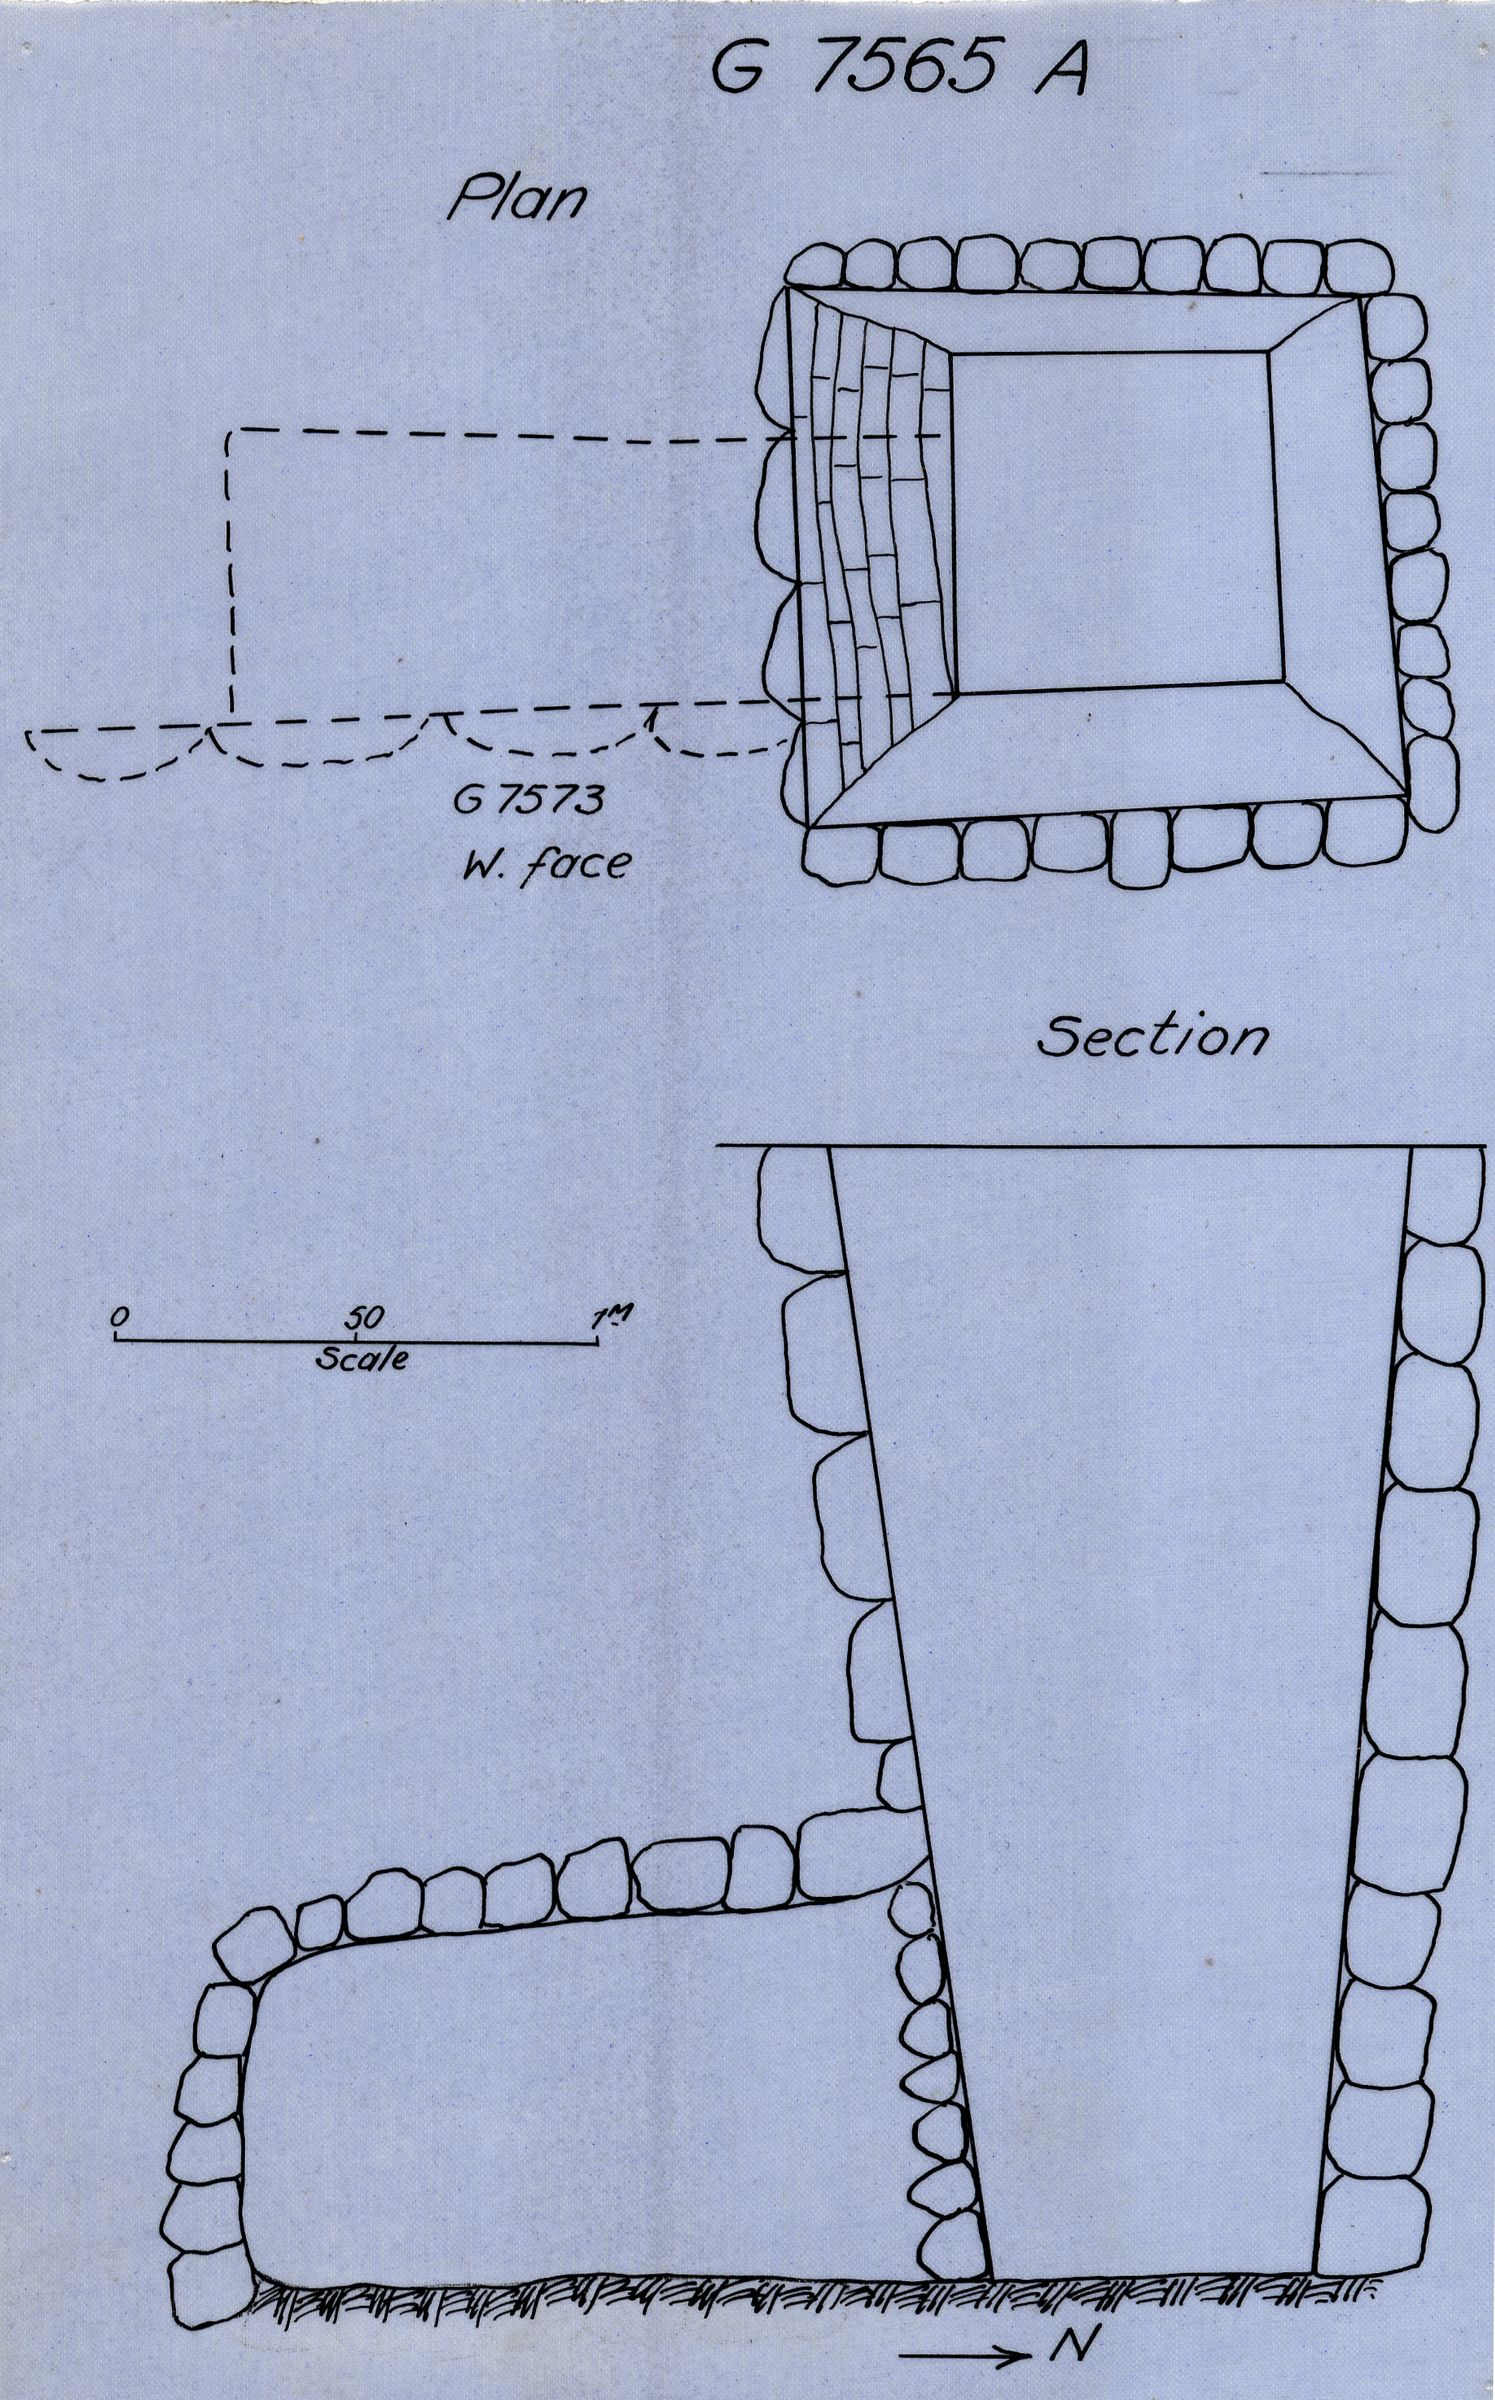 Maps and plans: G 7565, Shaft A